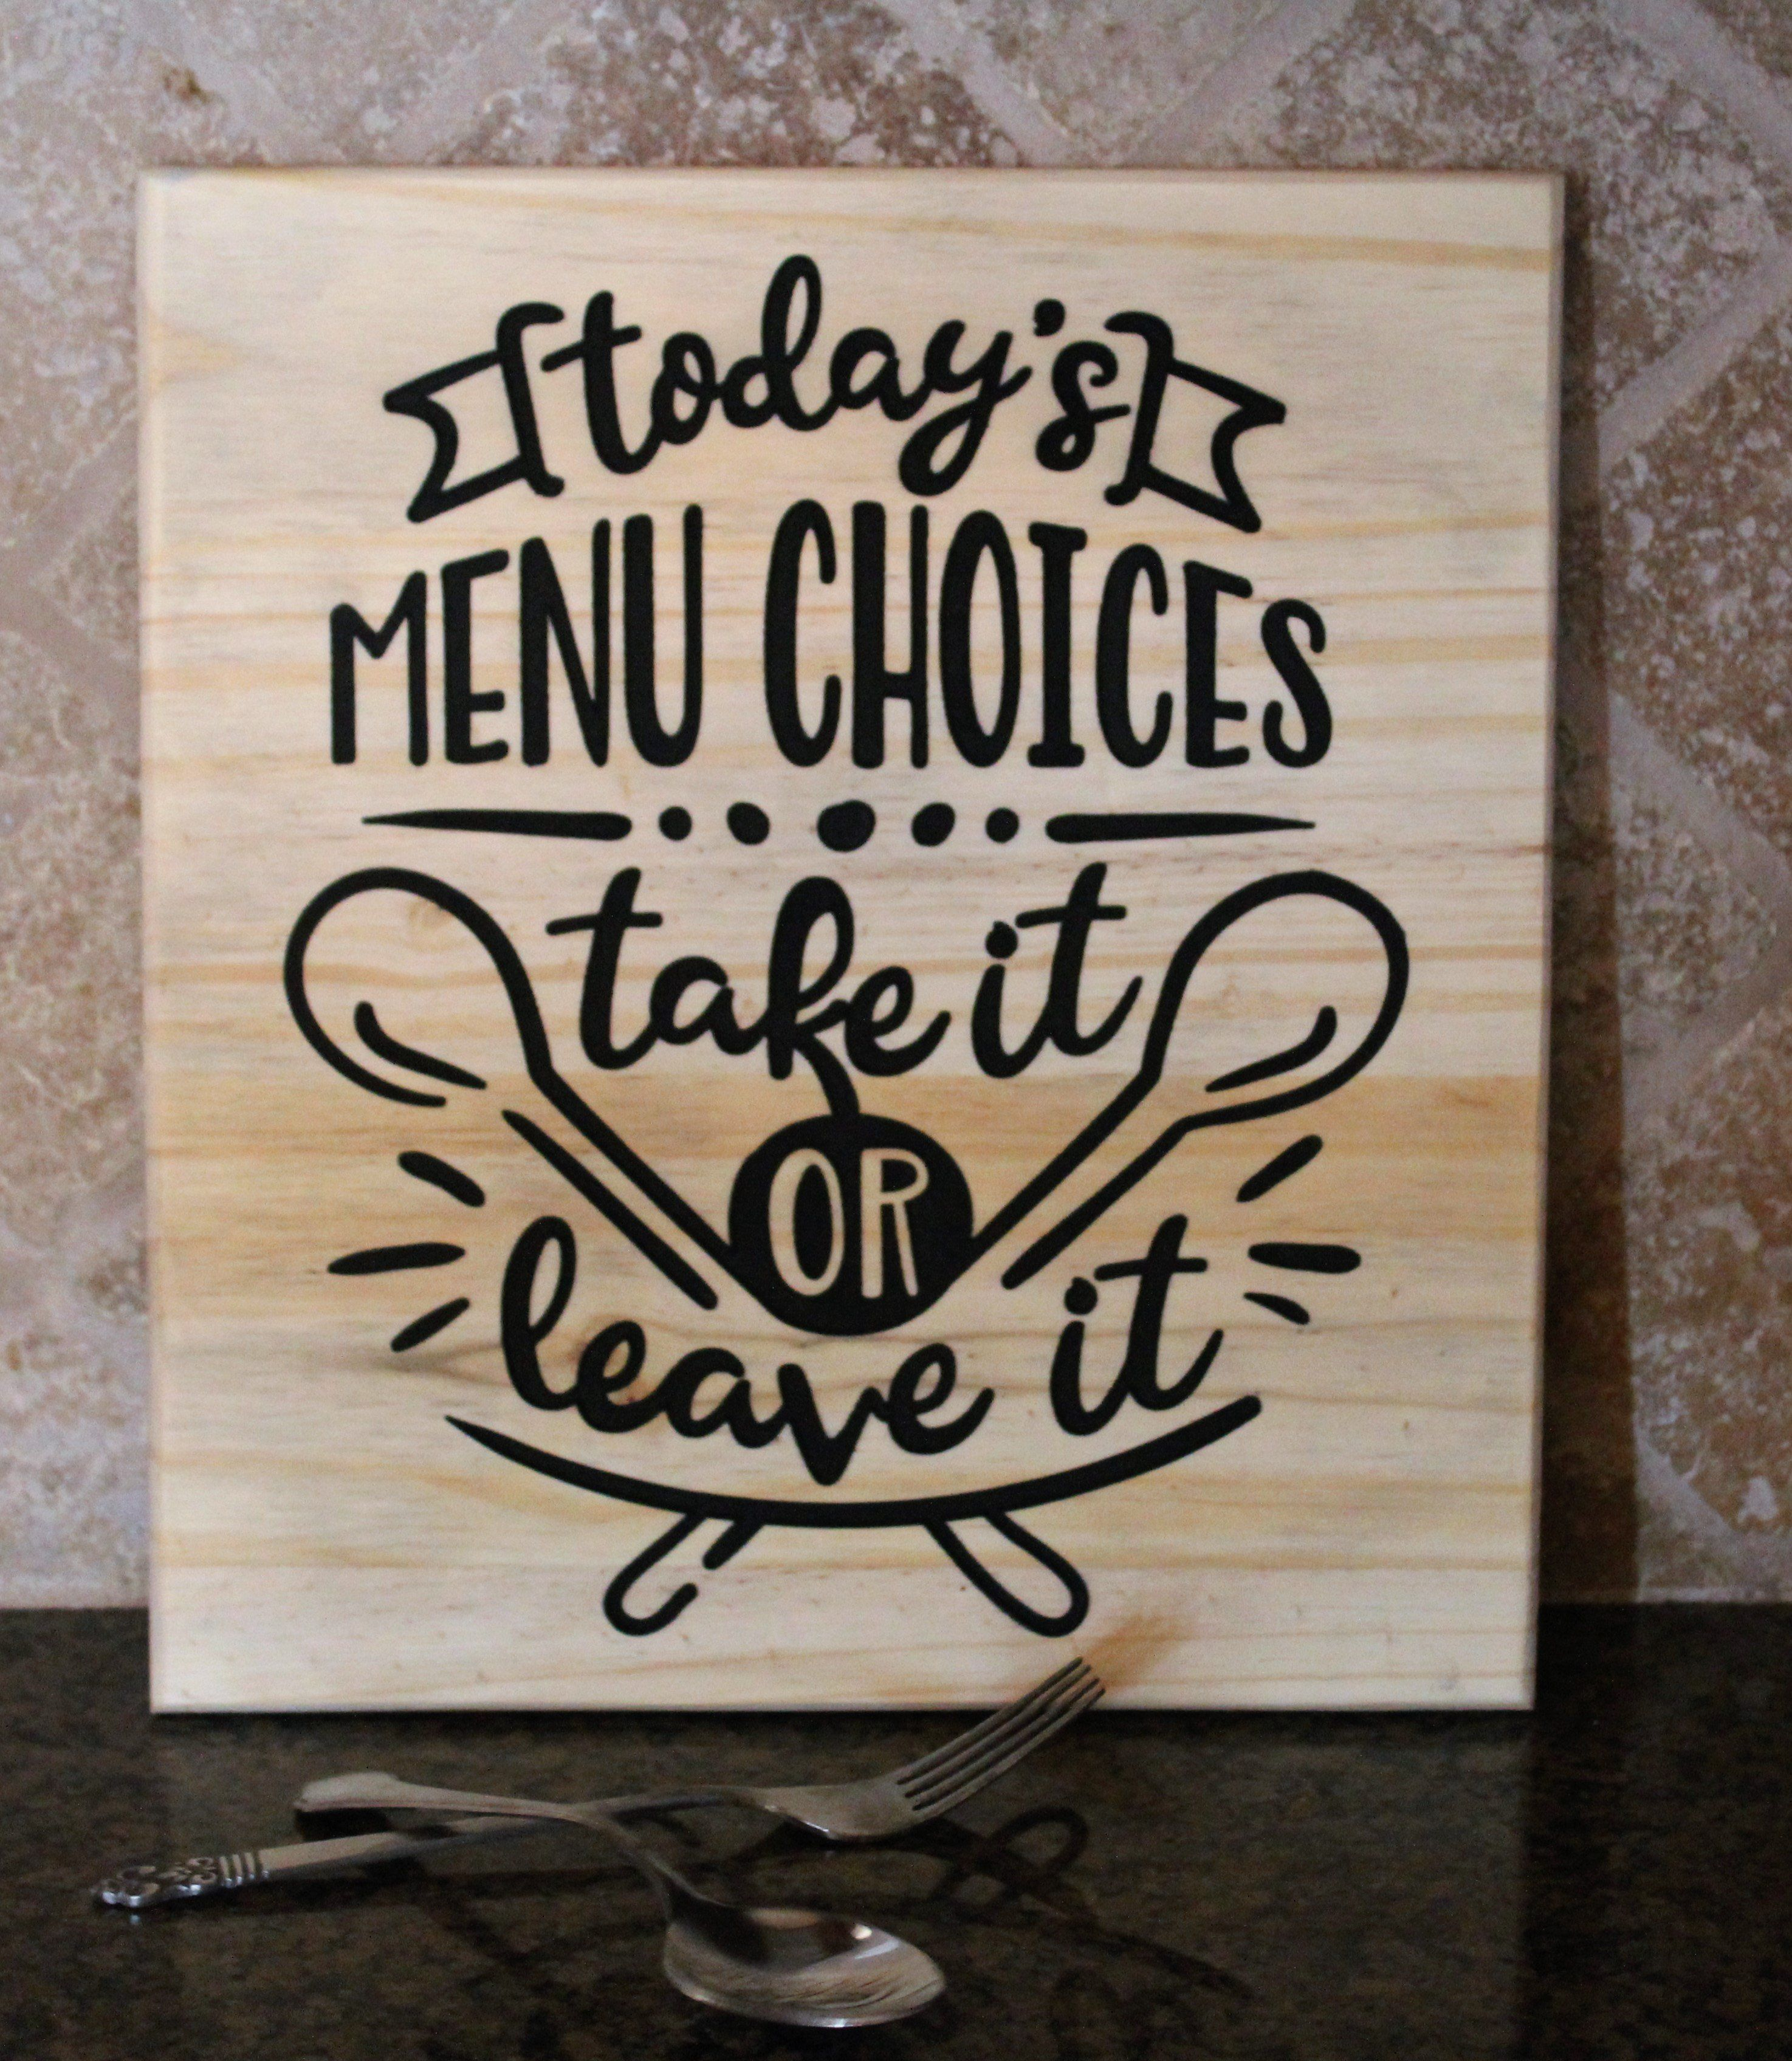 Add A Funny Quote To Your Kitchen Decor With This Today S Menu Take It Or Leave It Wood Sign It Also Ser Funny Kitchen Signs Kitchen Decor Signs Kitchen Humor